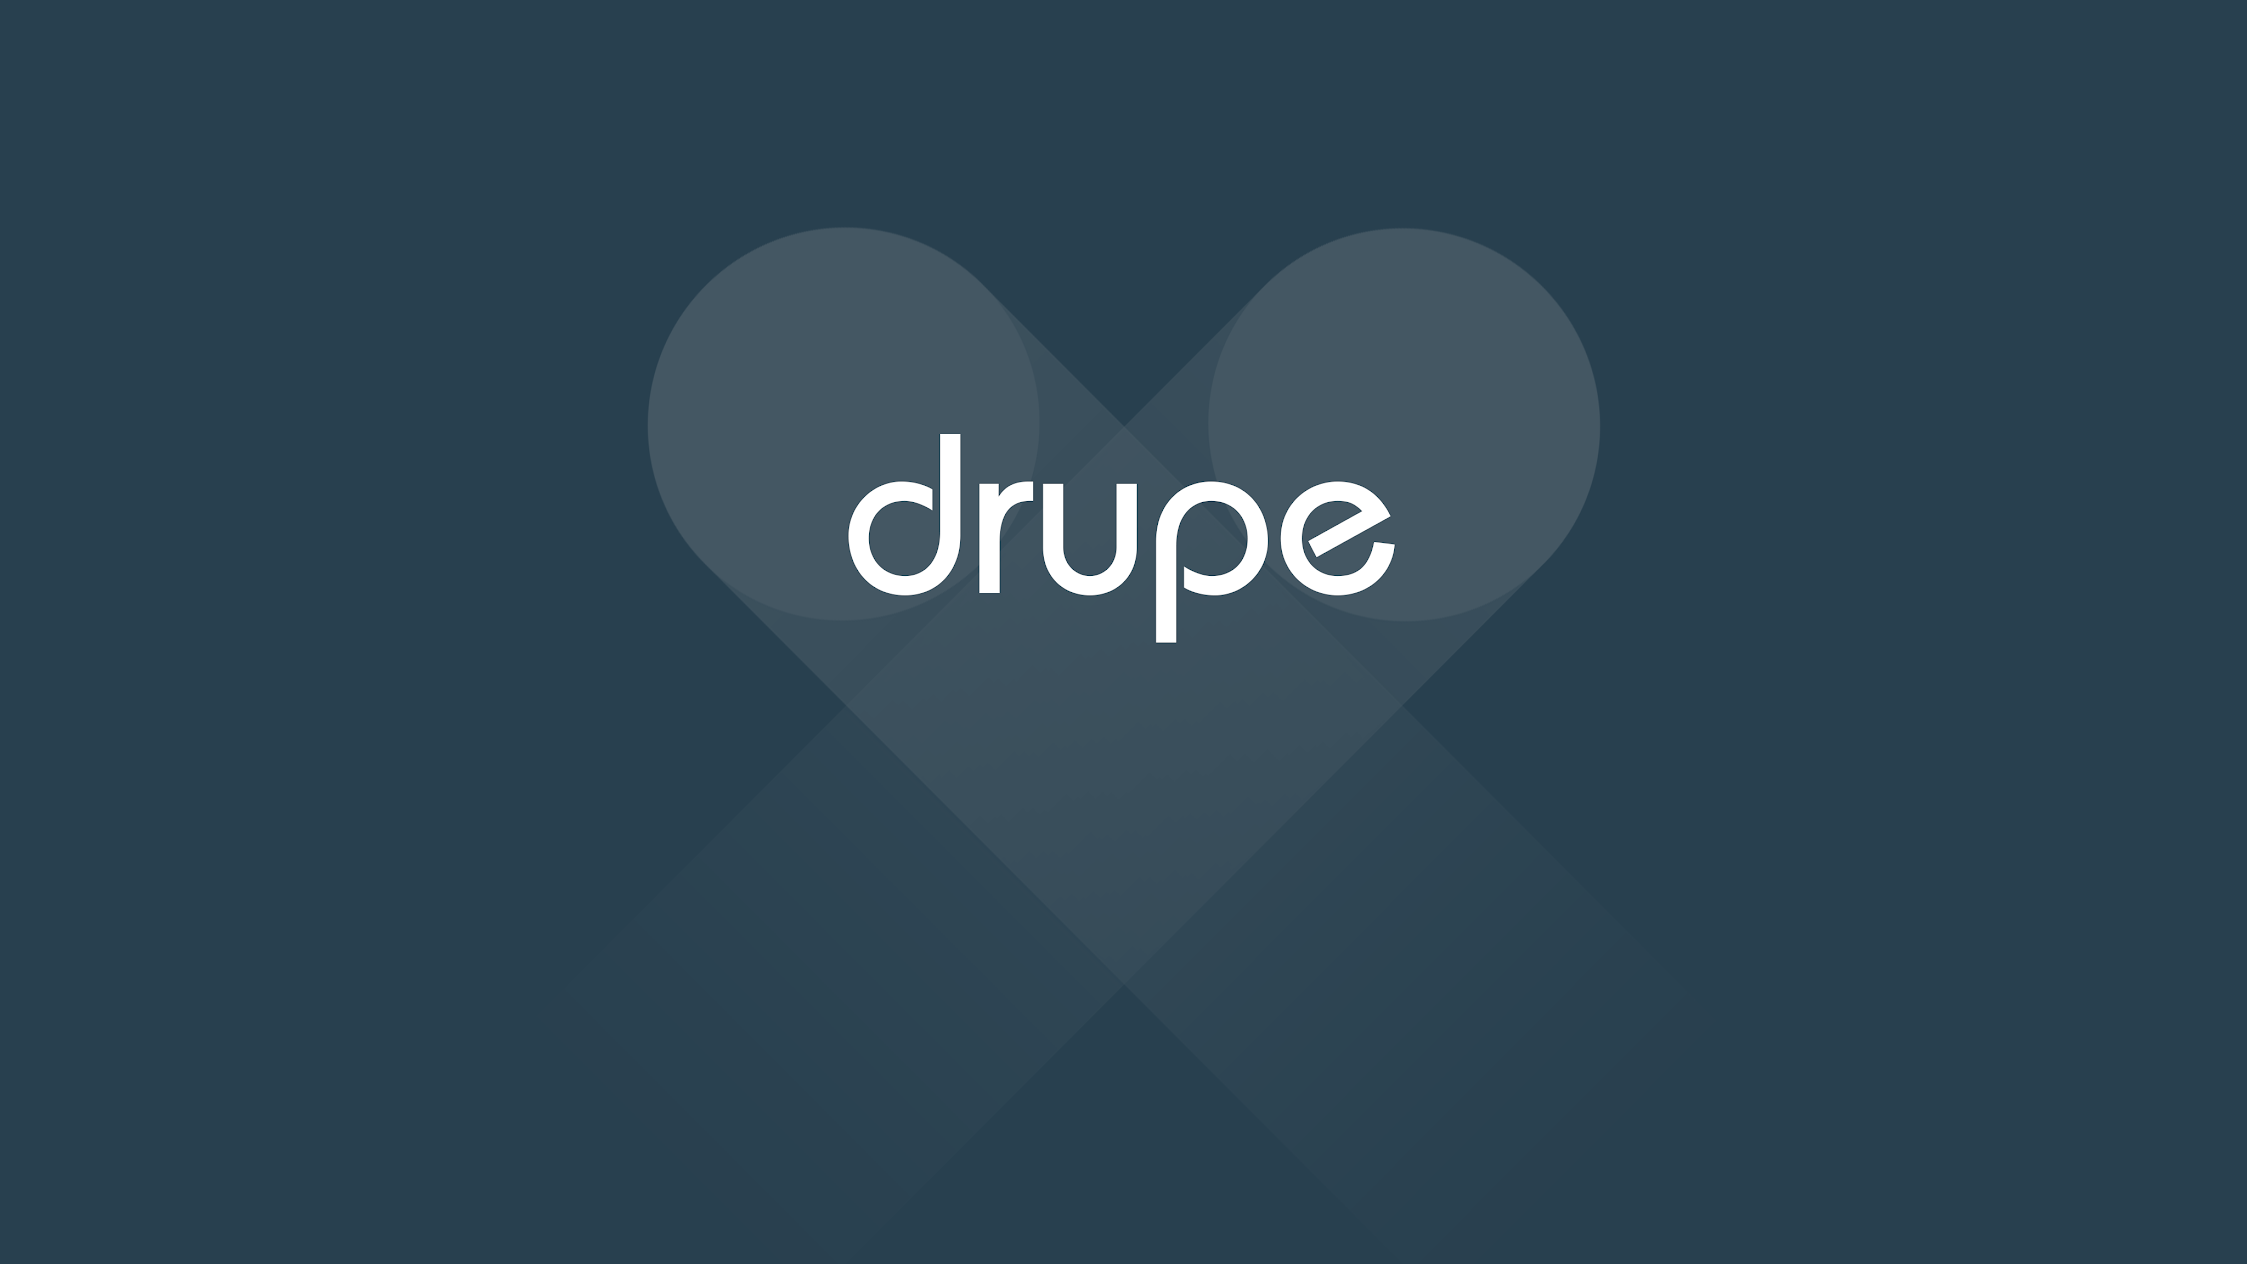 📞 drupe - Contacts & Caller ID 📞